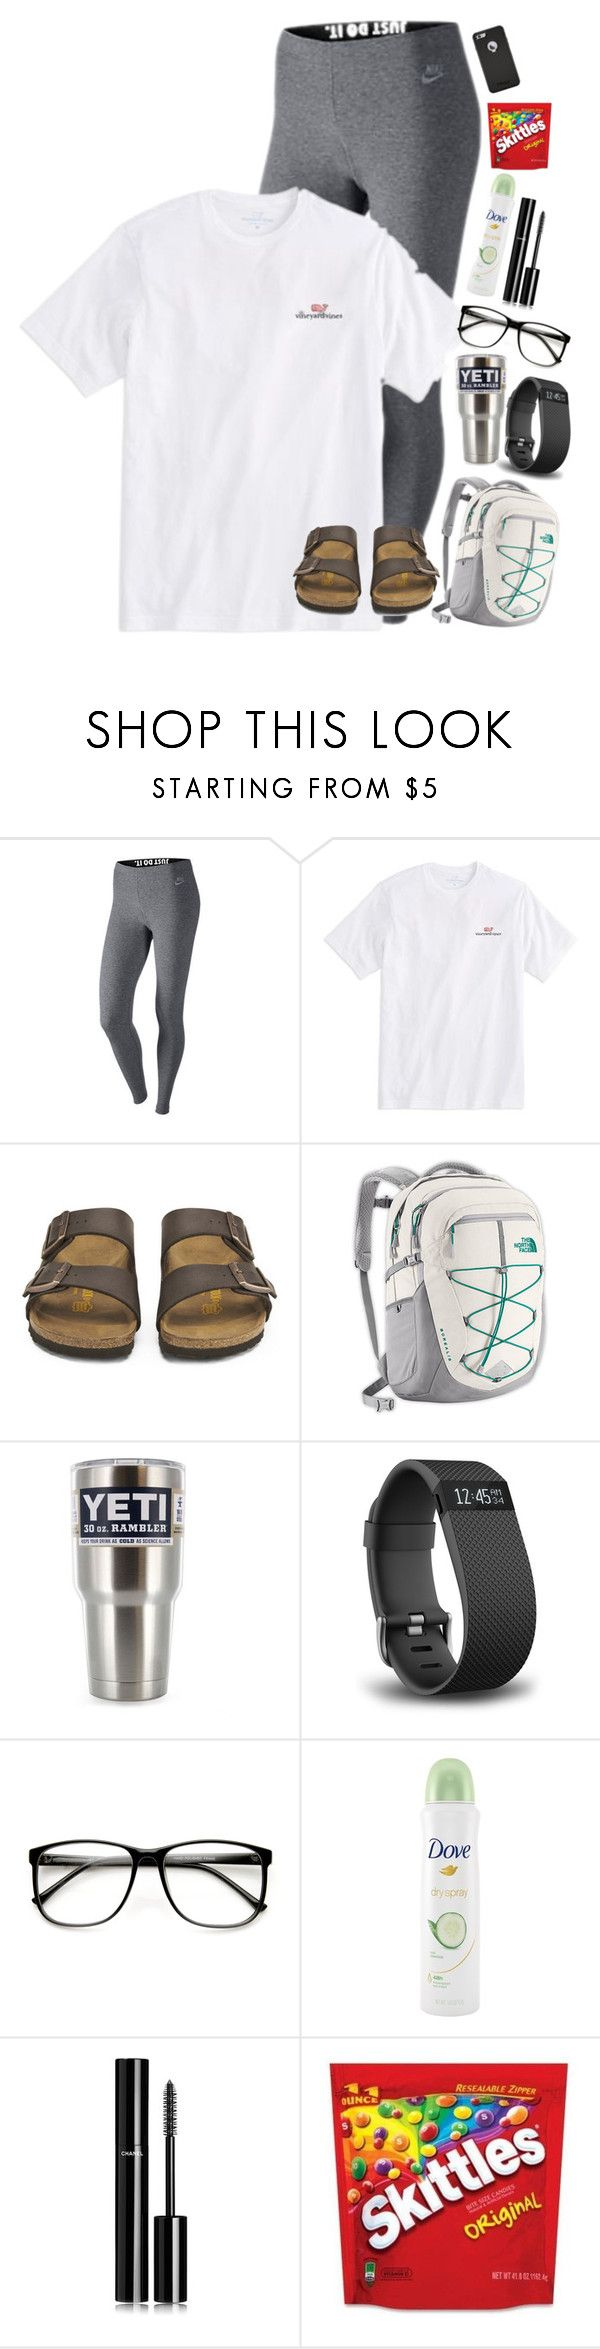 """Recreating my old sets!"" by lacrosse-19 ❤ liked on Polyvore featuring NIKE, Vineyard Vines, Birkenstock, The North Face, Fitbit, ZeroUV, Dove and Chanel"